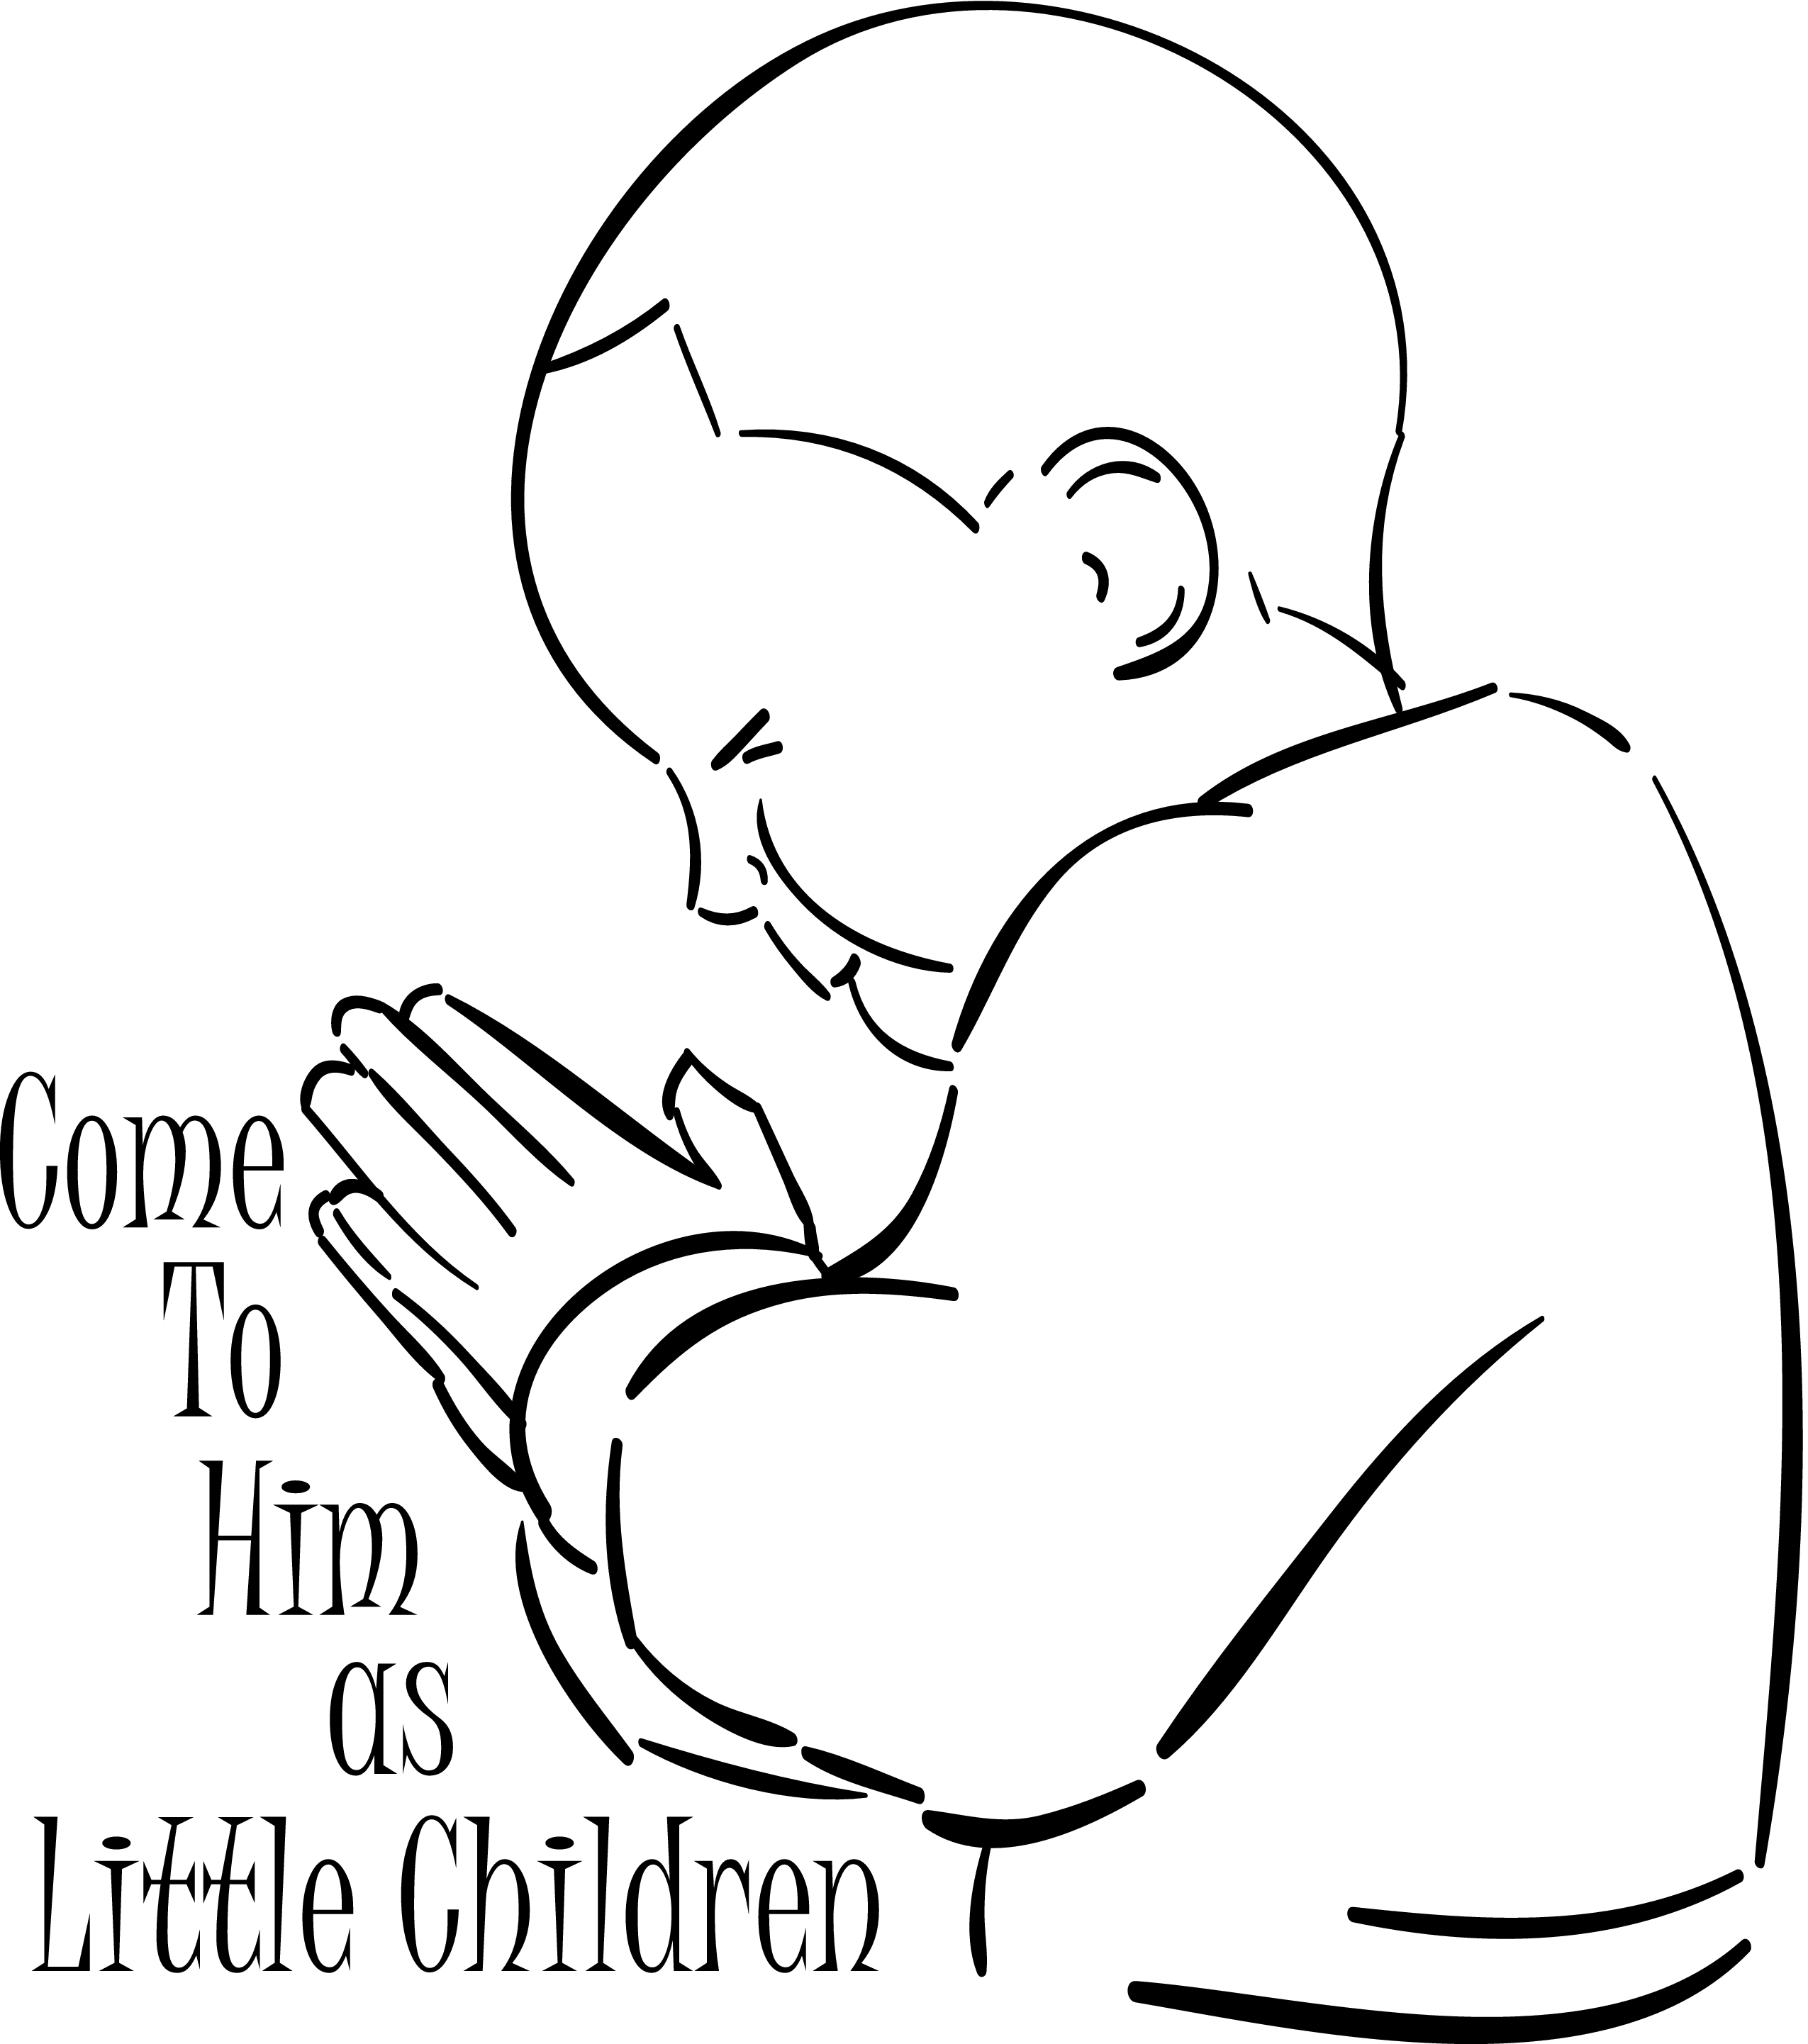 Free Youth Praying Cliparts Download Free Clip Art Free Clip Art On Clipart Library